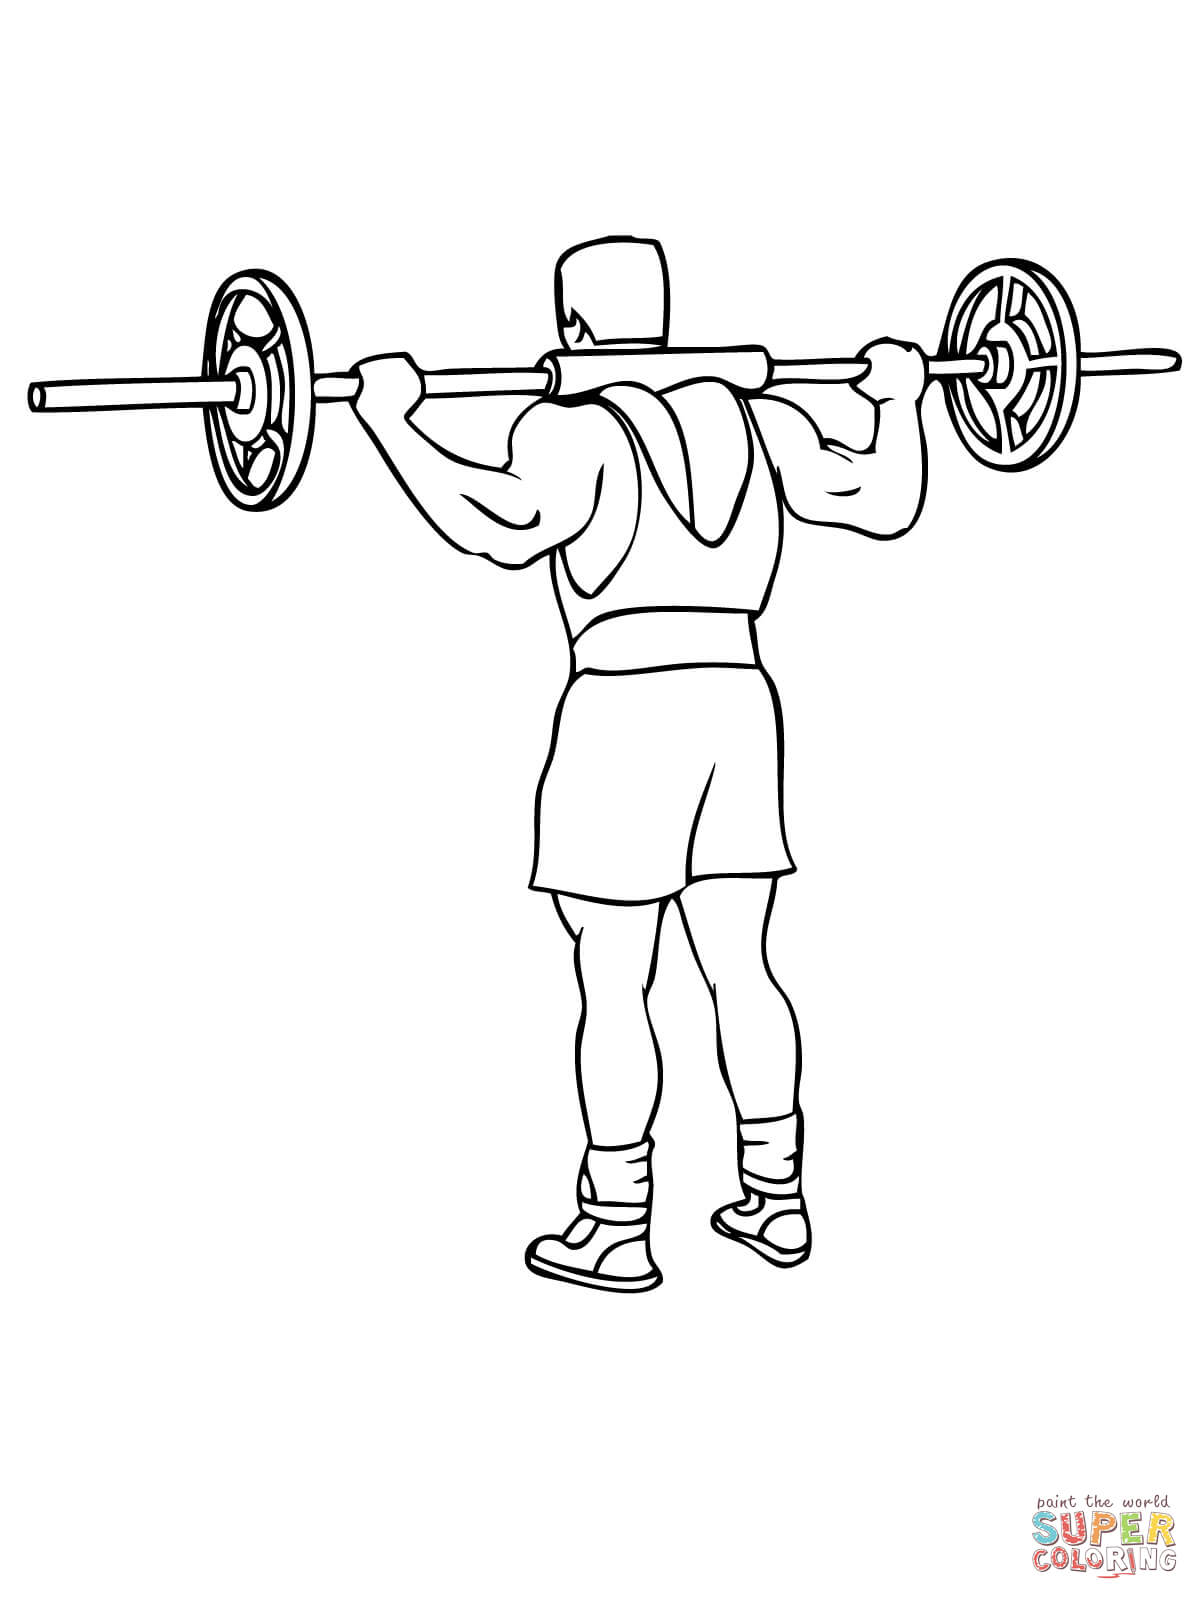 Barbell Good Morning Exercise Coloring Page